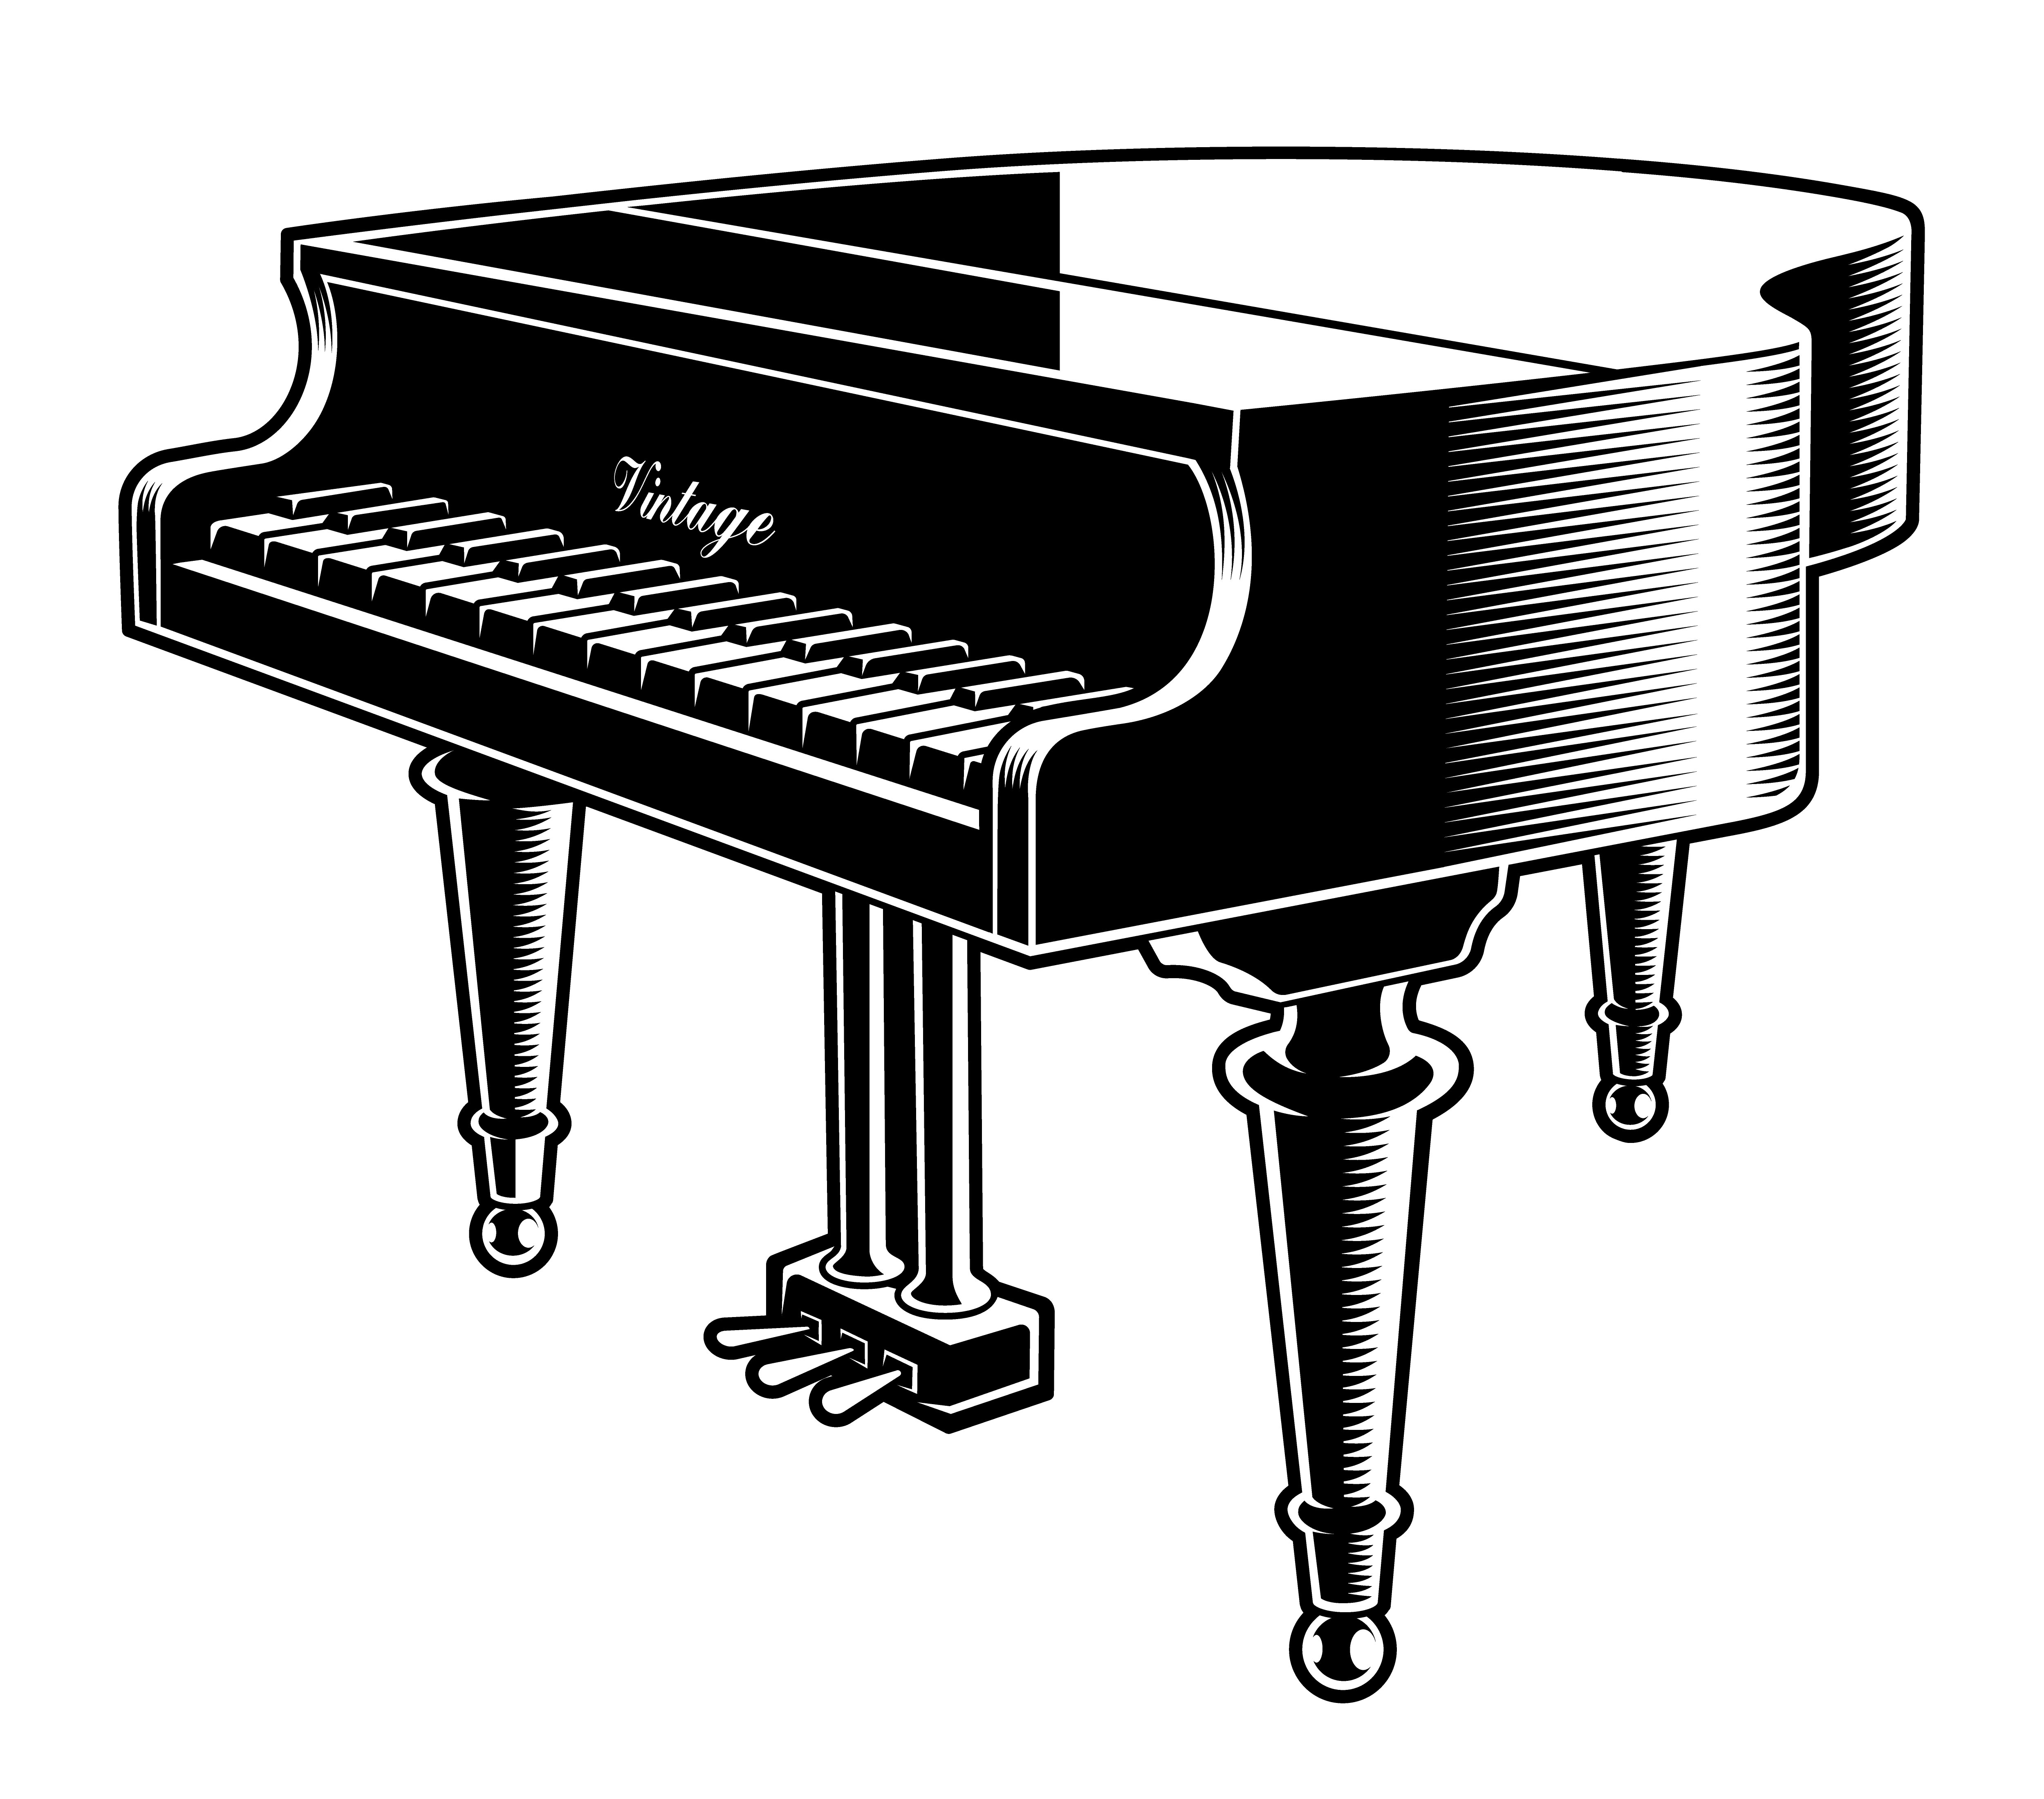 drawings of pianos how to draw a piano drawingforallnet pianos of drawings